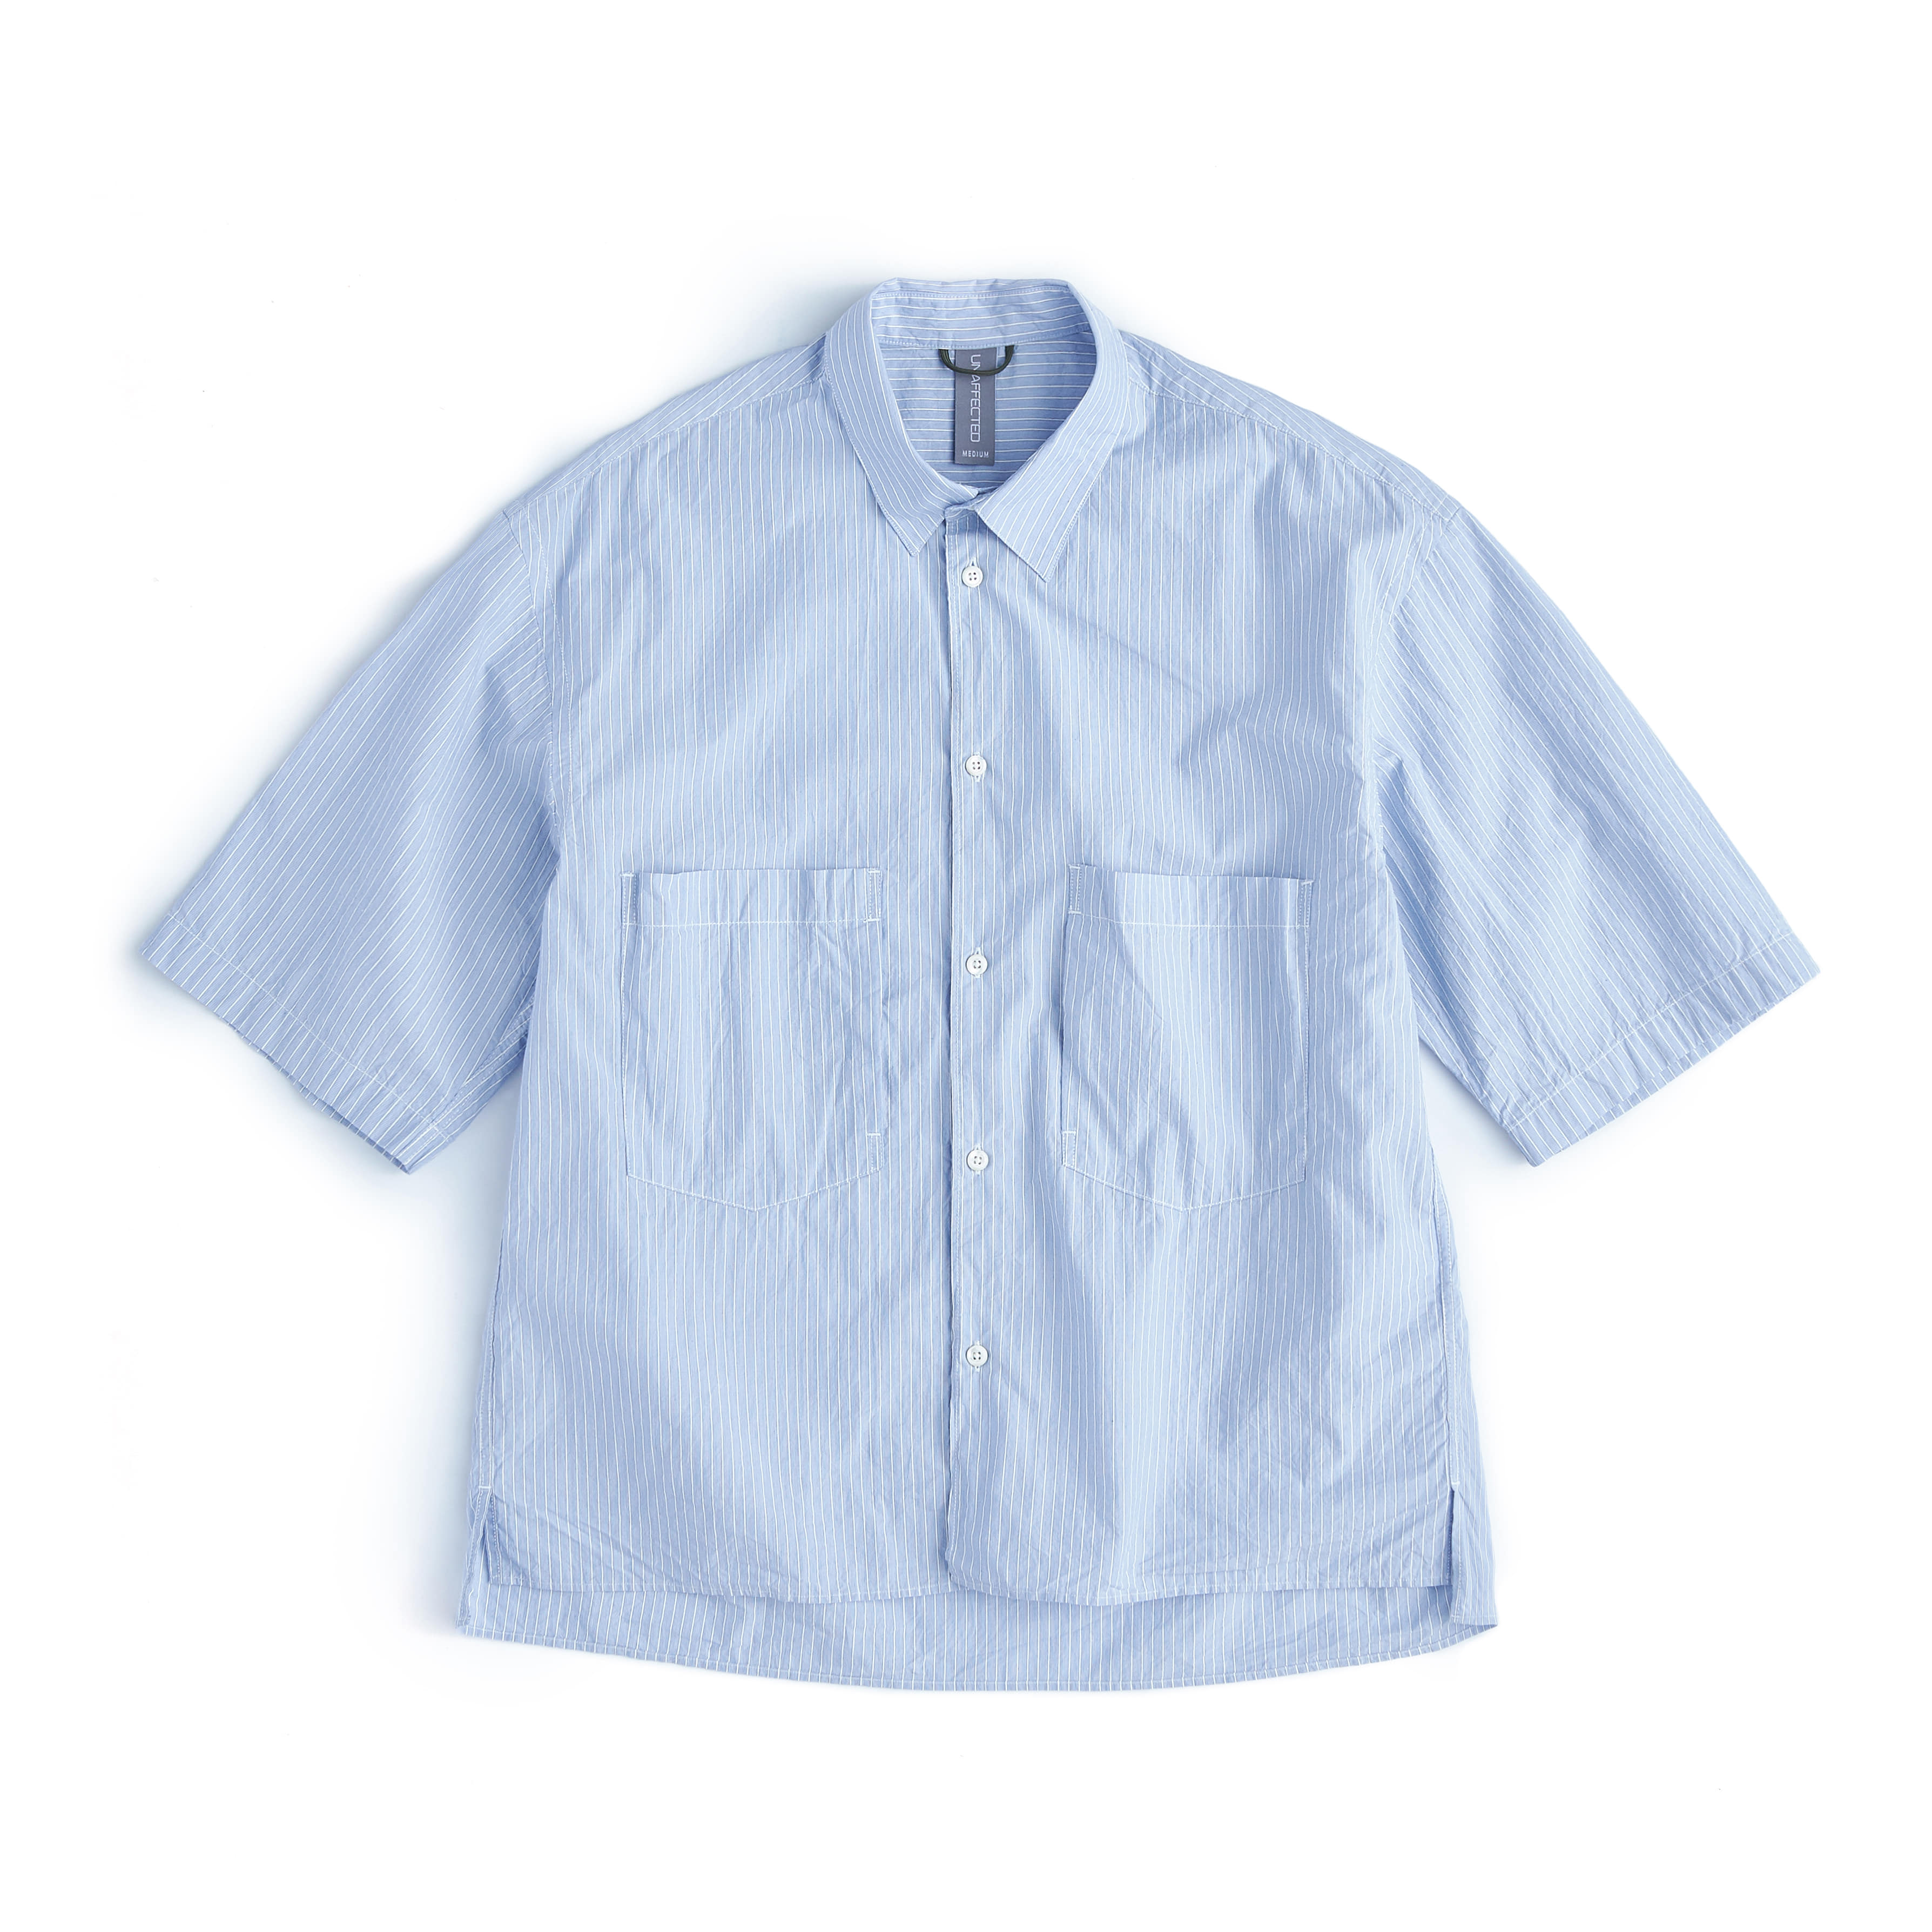 언어펙티드 OVERSIZED HALF SHIRT_Blue Stripe